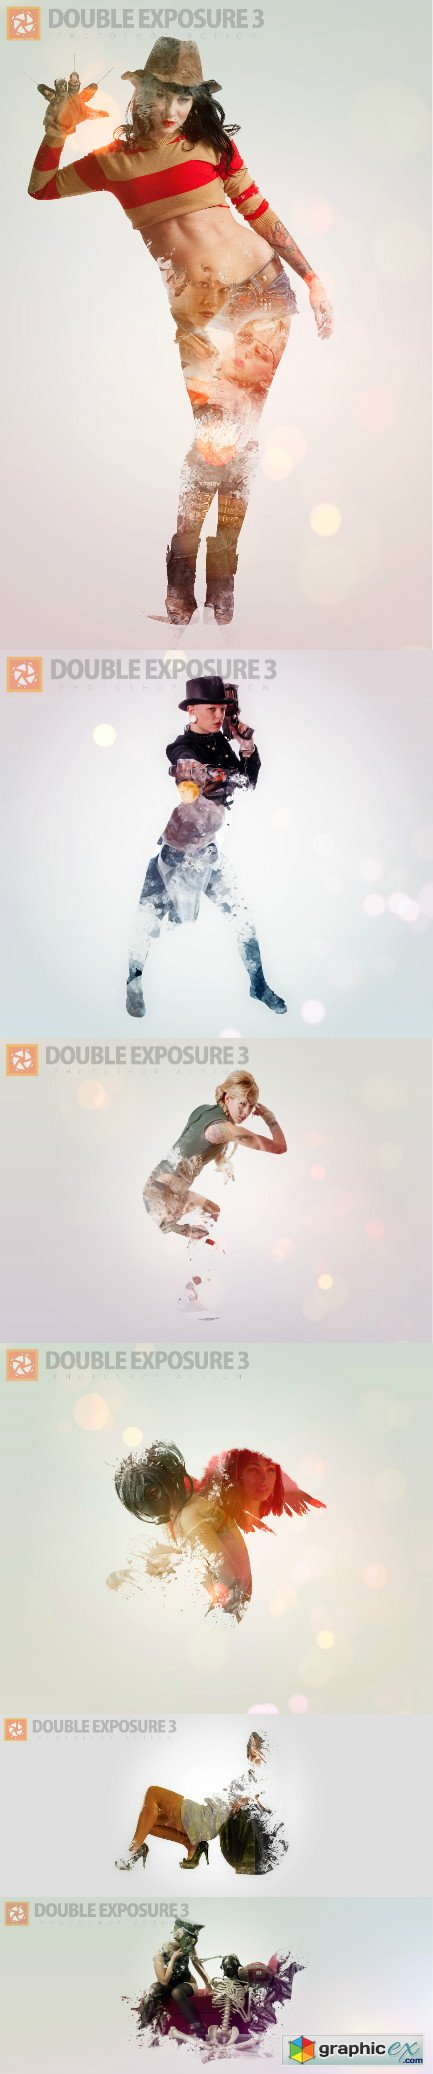 Double Exposure 3 Photoshop Action